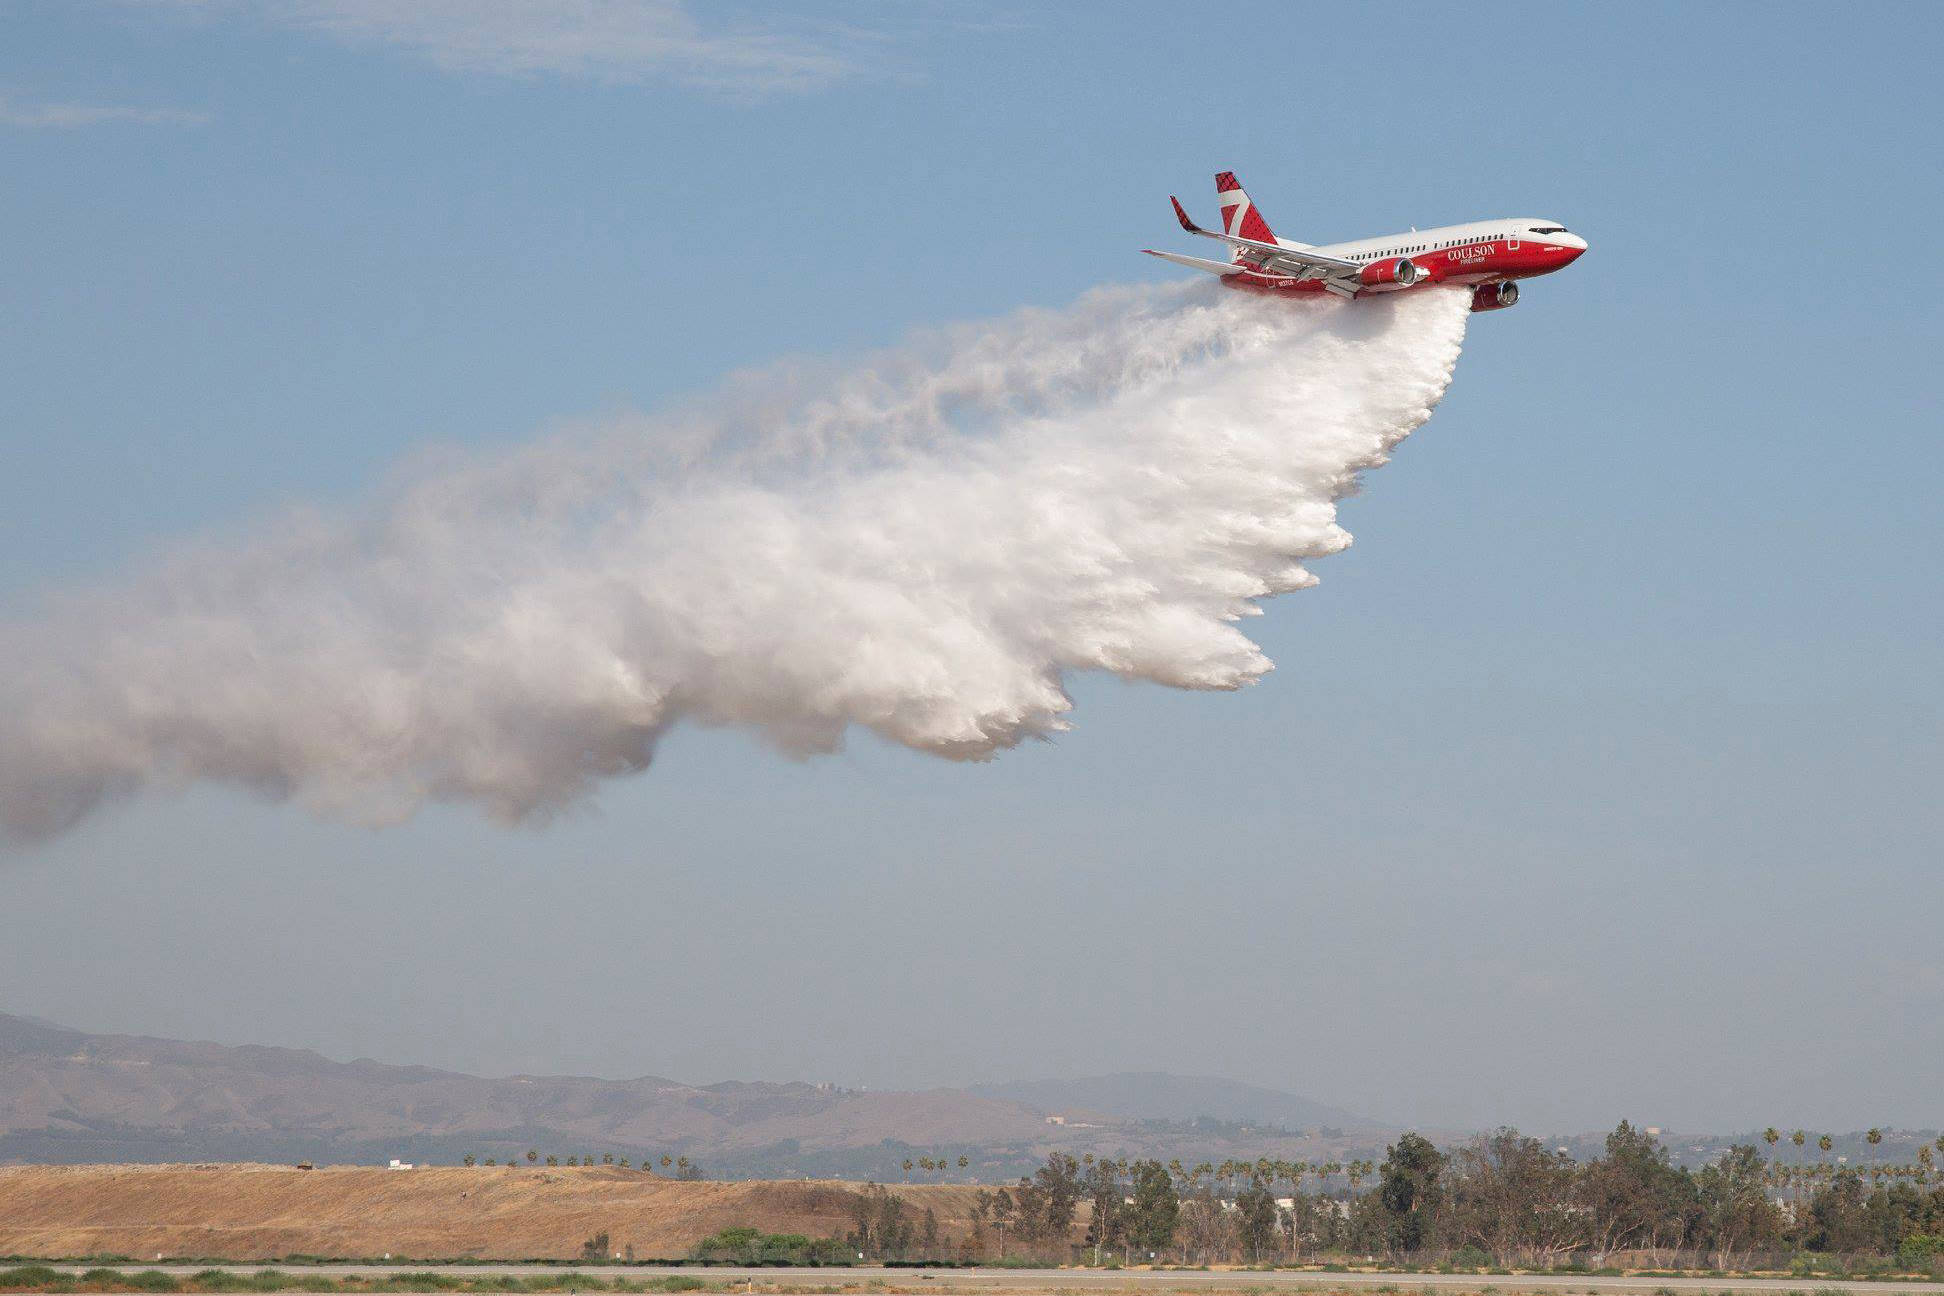 The T-137 Fireliner carries out a series of drops as part of its FAA testing in July. PHOTO COURTESY DAVE CIBLEY